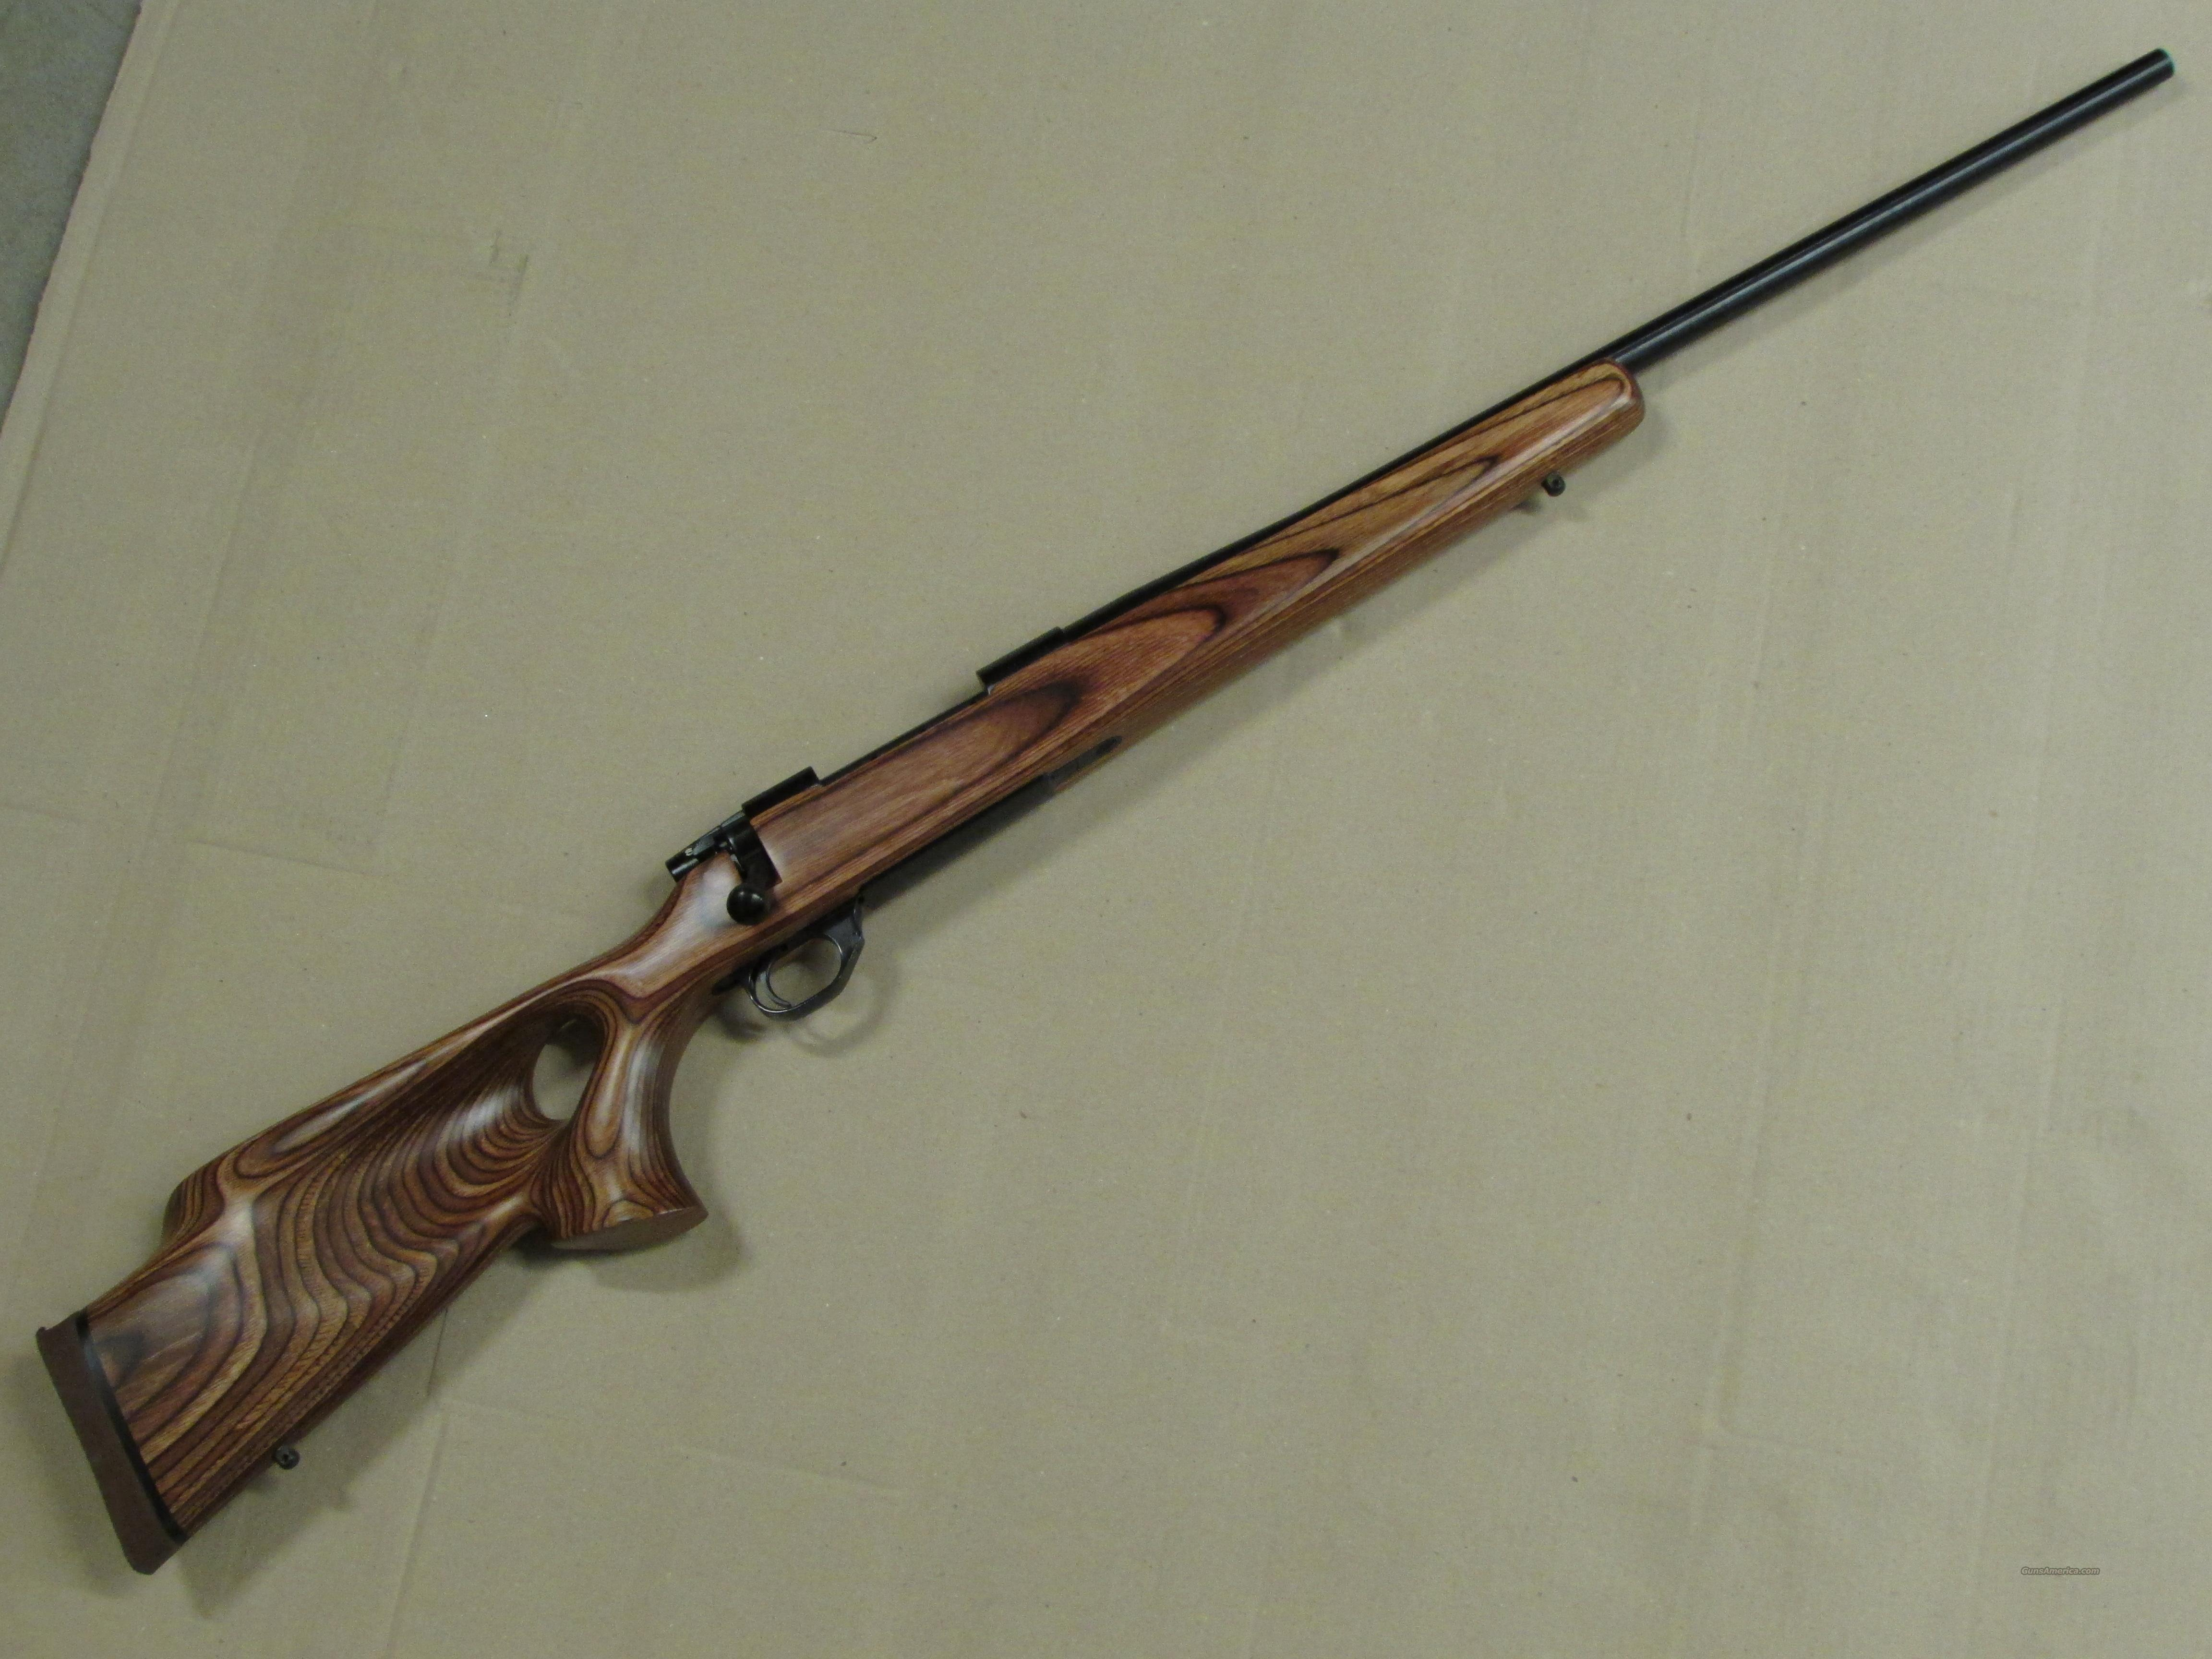 Weatherby Vanguard Thumbhole Stock .300 Win. Magnum  Guns > Rifles > Weatherby Rifles > Sporting